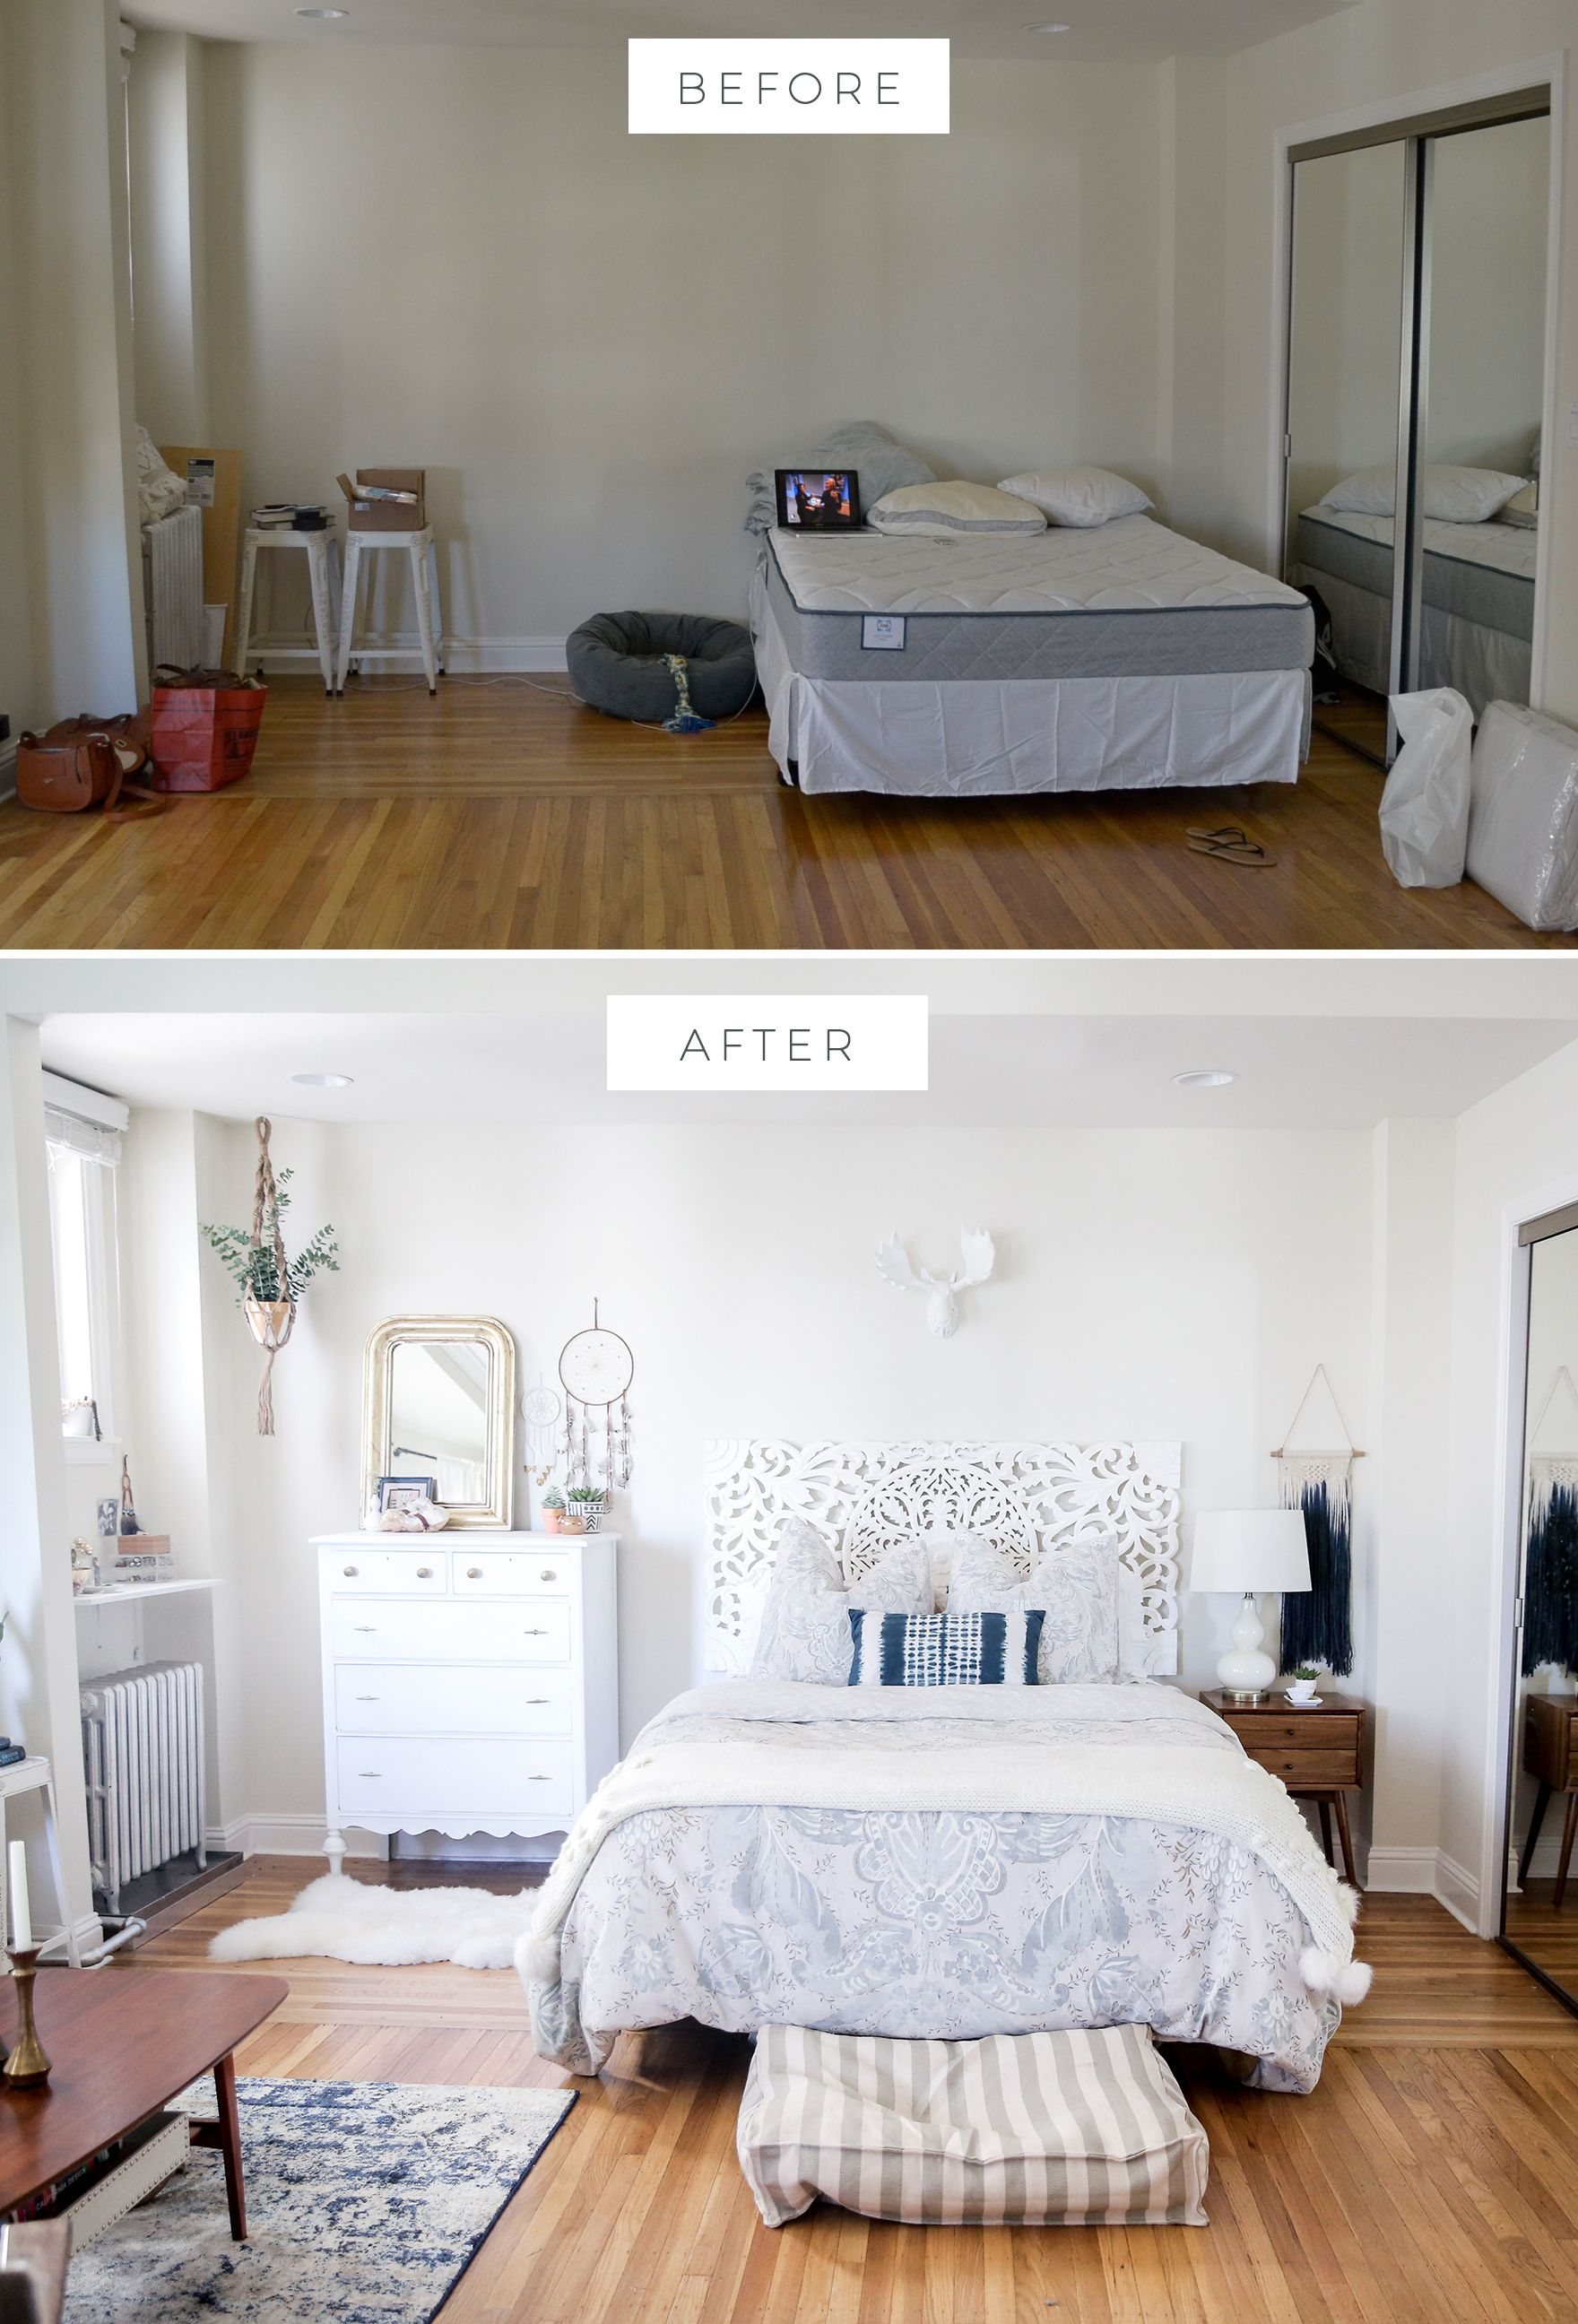 Best 25+ Bedroom makeover before and after ideas on ...